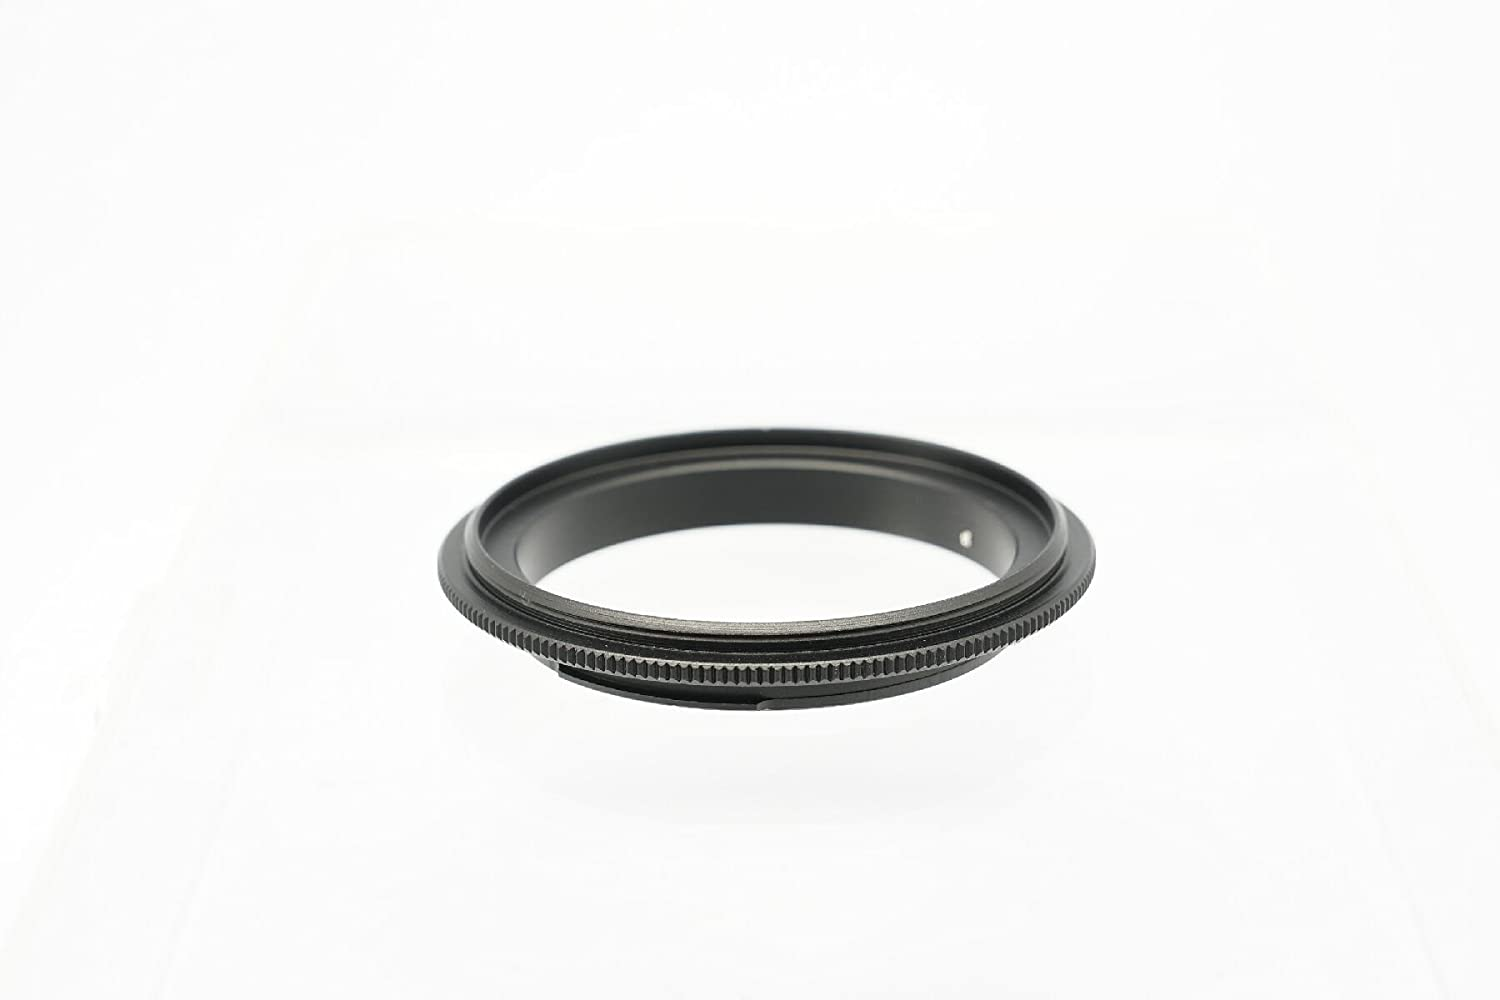 Gadget Place 58mm Reverse Lens Adapter for Sony SLT-A77 SLT-A65 SLT-A35 SLT-A55 SLT-A33 Alpha DSLR-A580 DSLR-A560